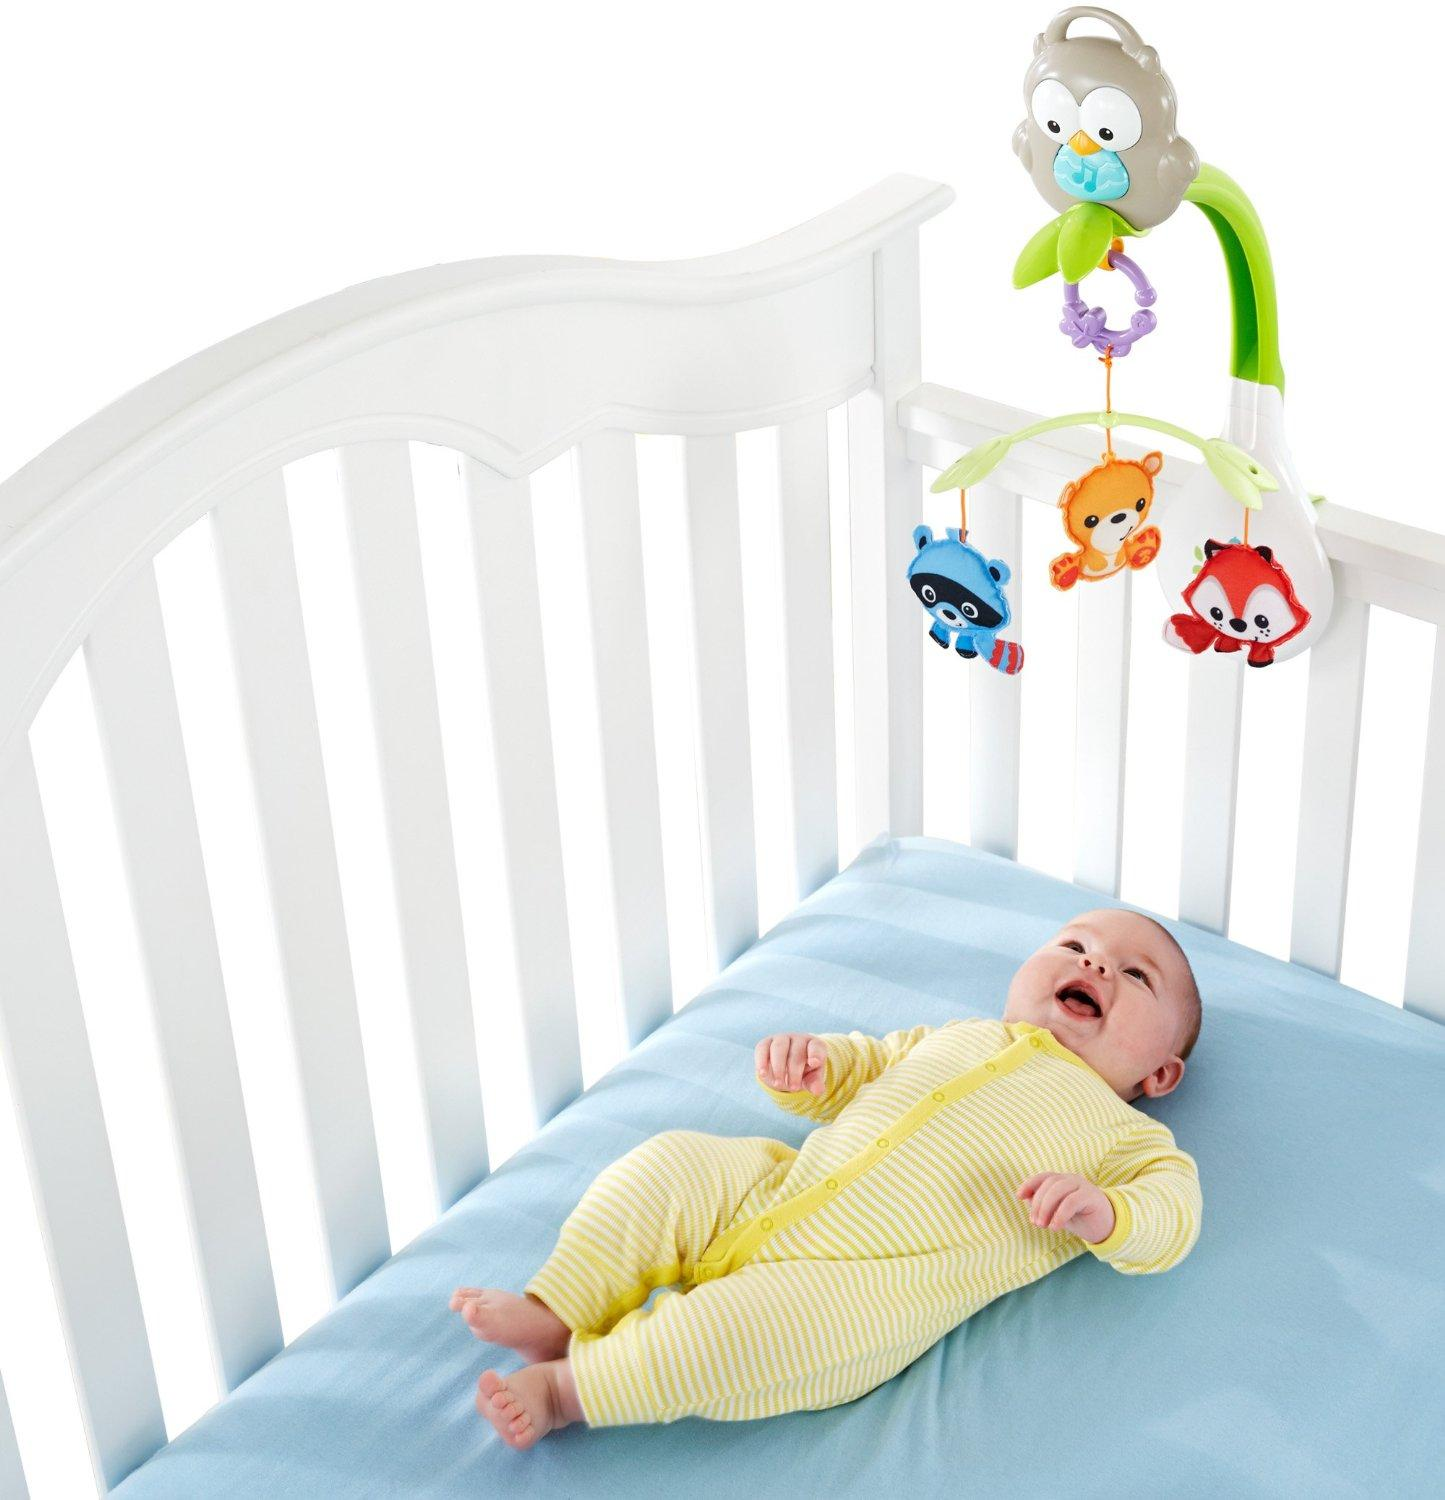 Amazon.com: Fisher-Price Woodland Friends 3-in-1 Musical Mobile: Baby